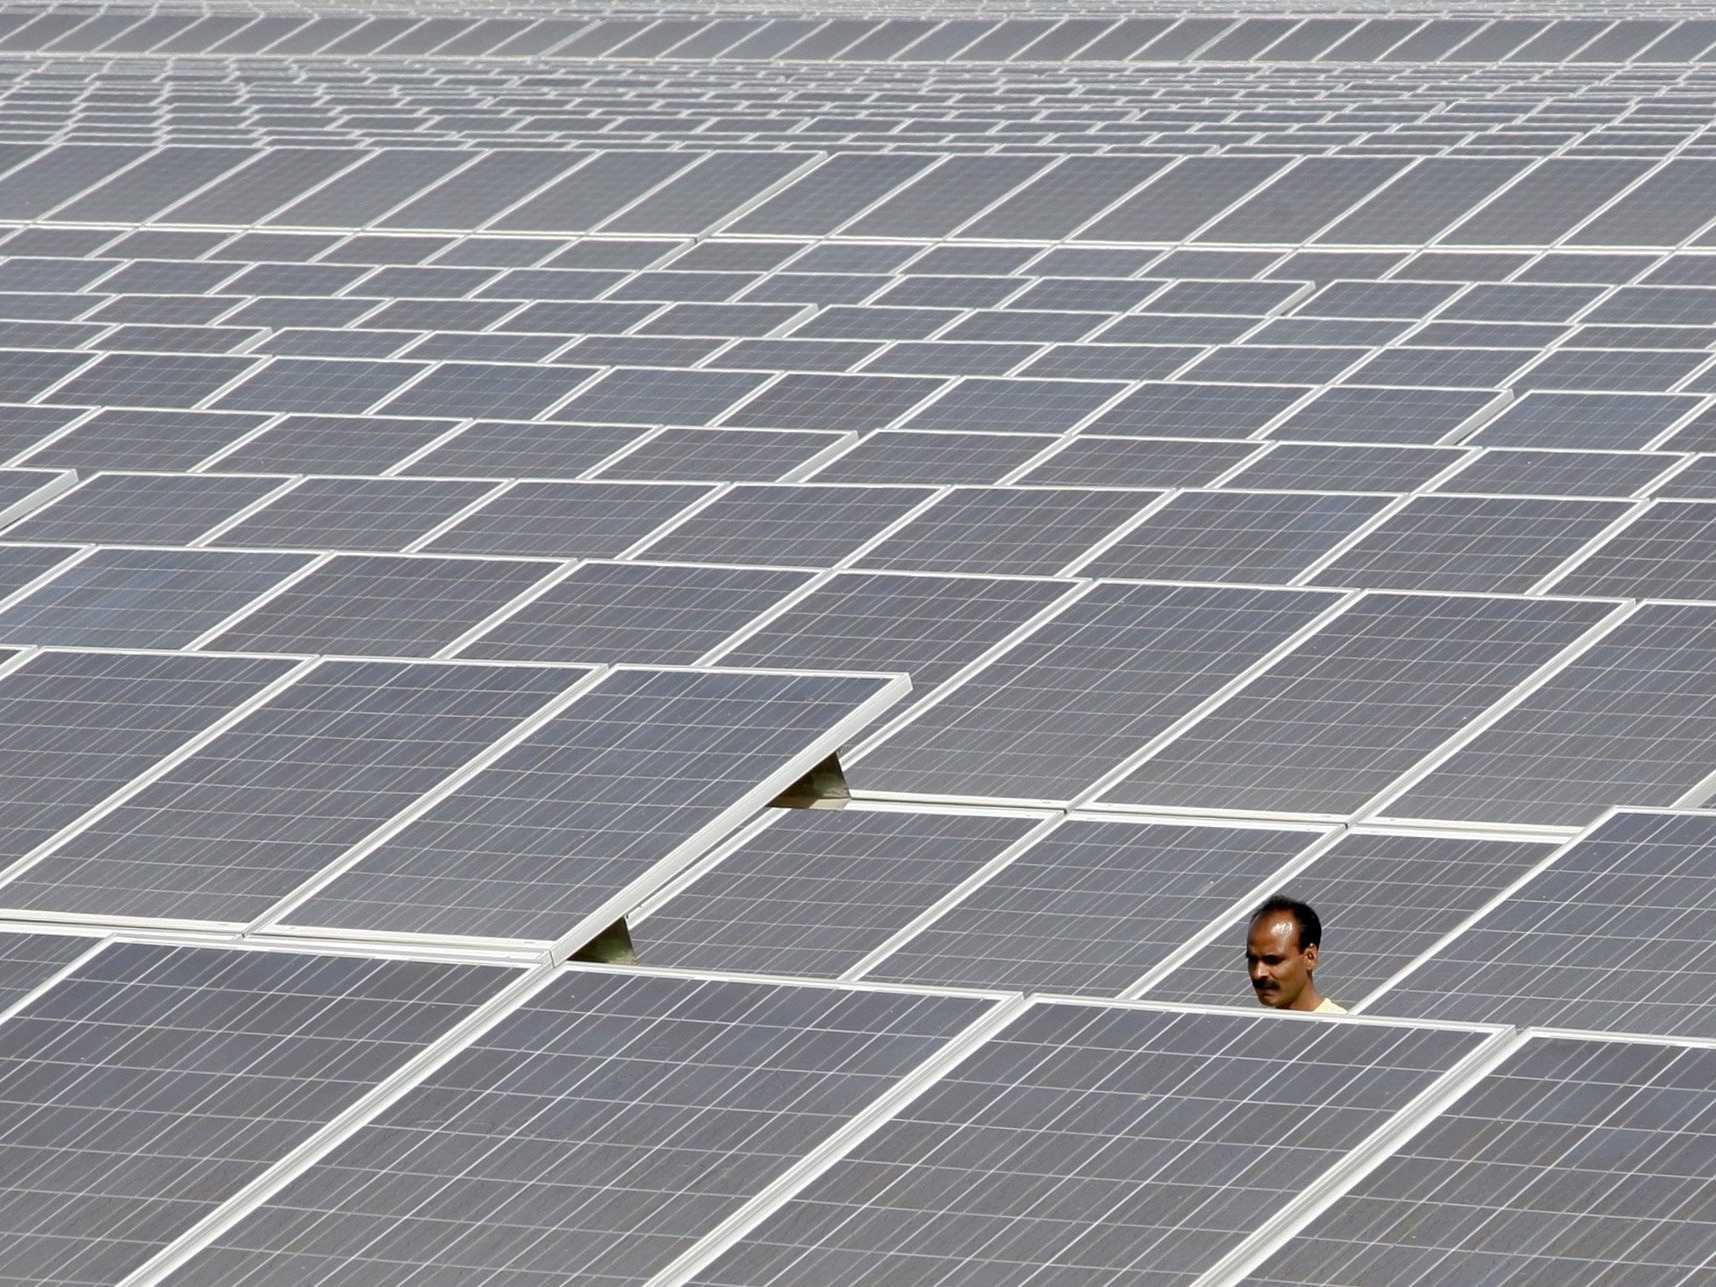 Machine Learning For Better And More Efficient Solar Power